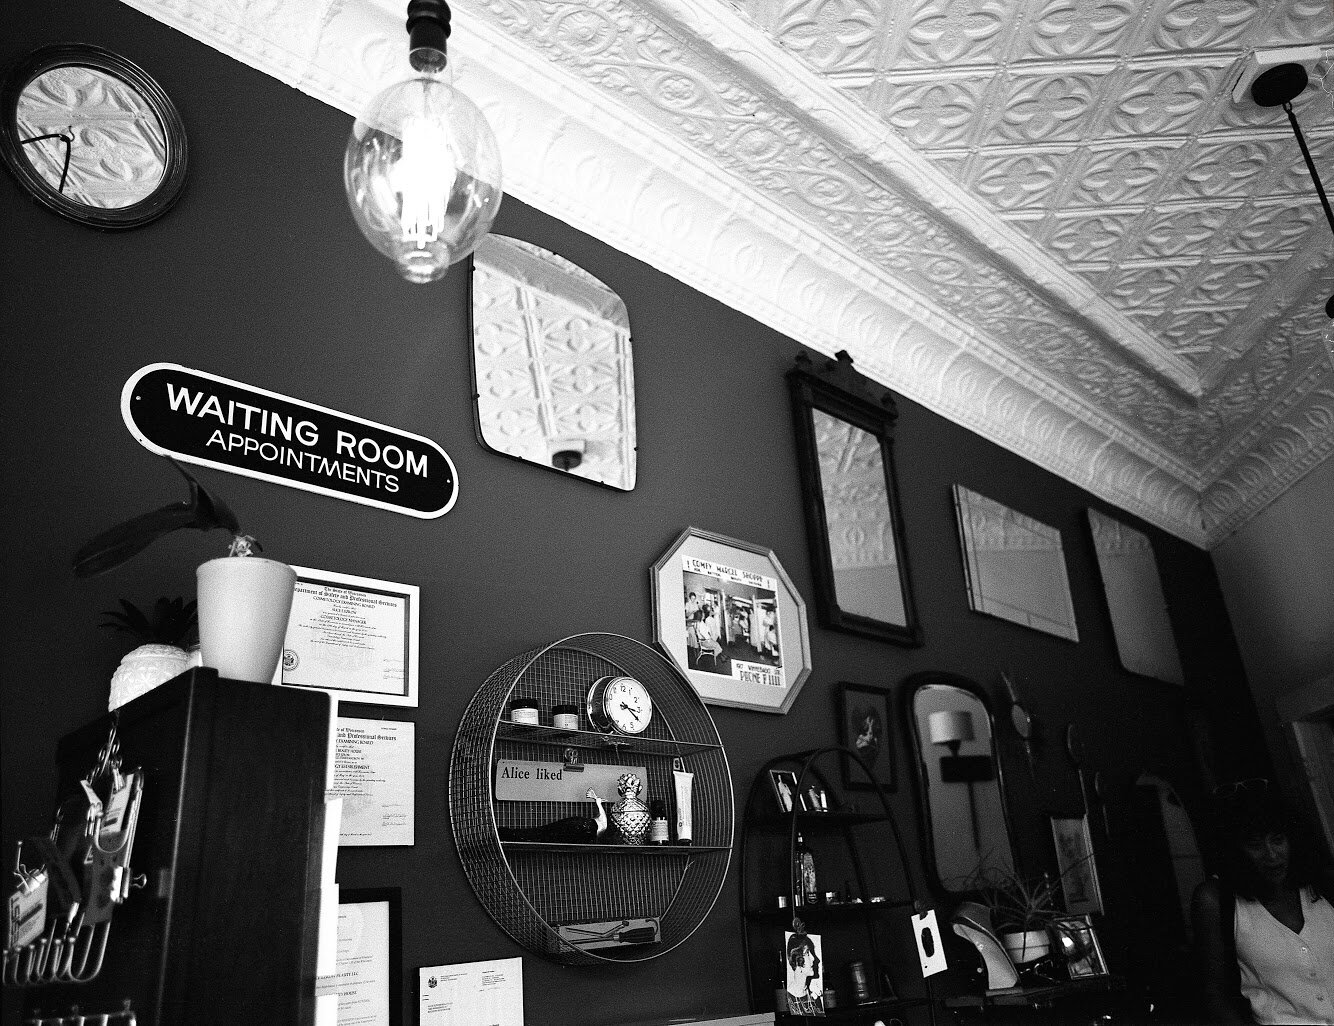 a tiny magic triangle - AT OUR ORIGINAL WINNEBAGO LOCATION, WE OFFER HAIRCUTS FOR BOTH MEN AND WOMEN WITH ANY STYLE NEEDS.Last-minute bookings available, but please call or book online before stopping in. We do take walk-ins and have more availability for this, but your time is valuable too, so let us know you are coming.